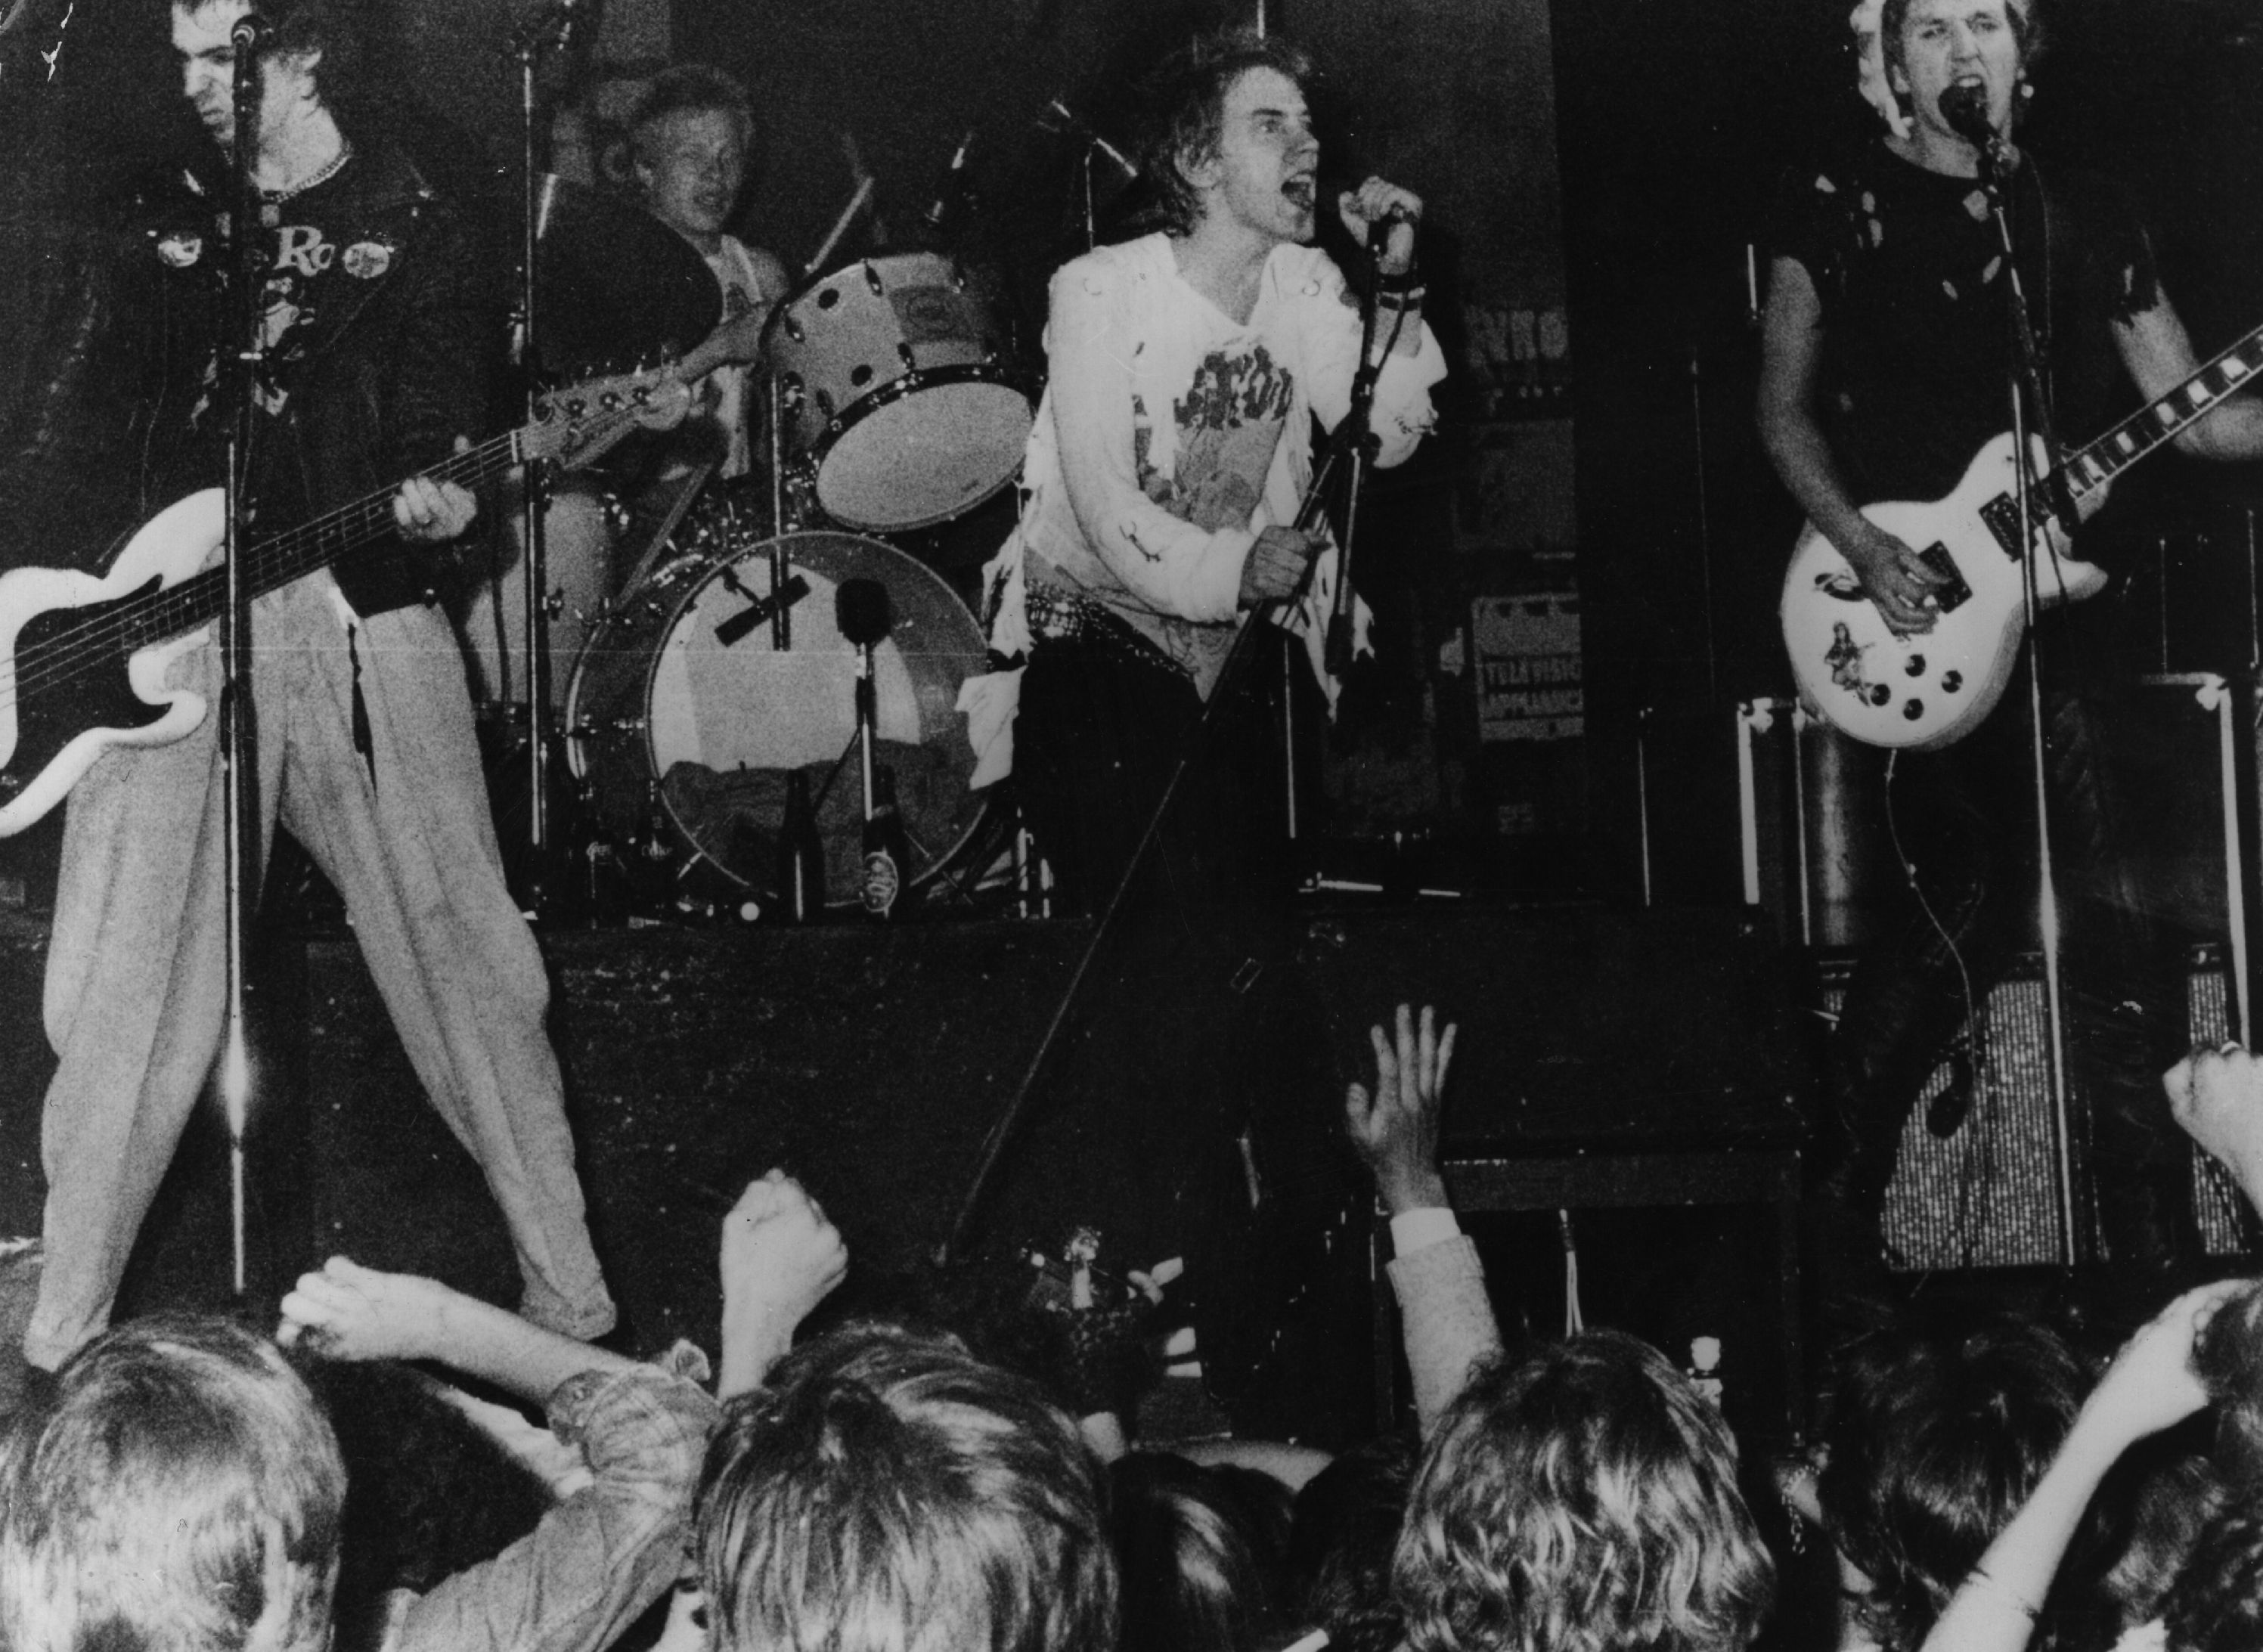 27th July 1977: Infamous British punk rock group The Sex Pistols playing live in Copenhagen. From left to right; Sid Vicious, Paul Cook, Johnny Rotten and Steve Jones. (Photo by Keystone Features/Getty Images)